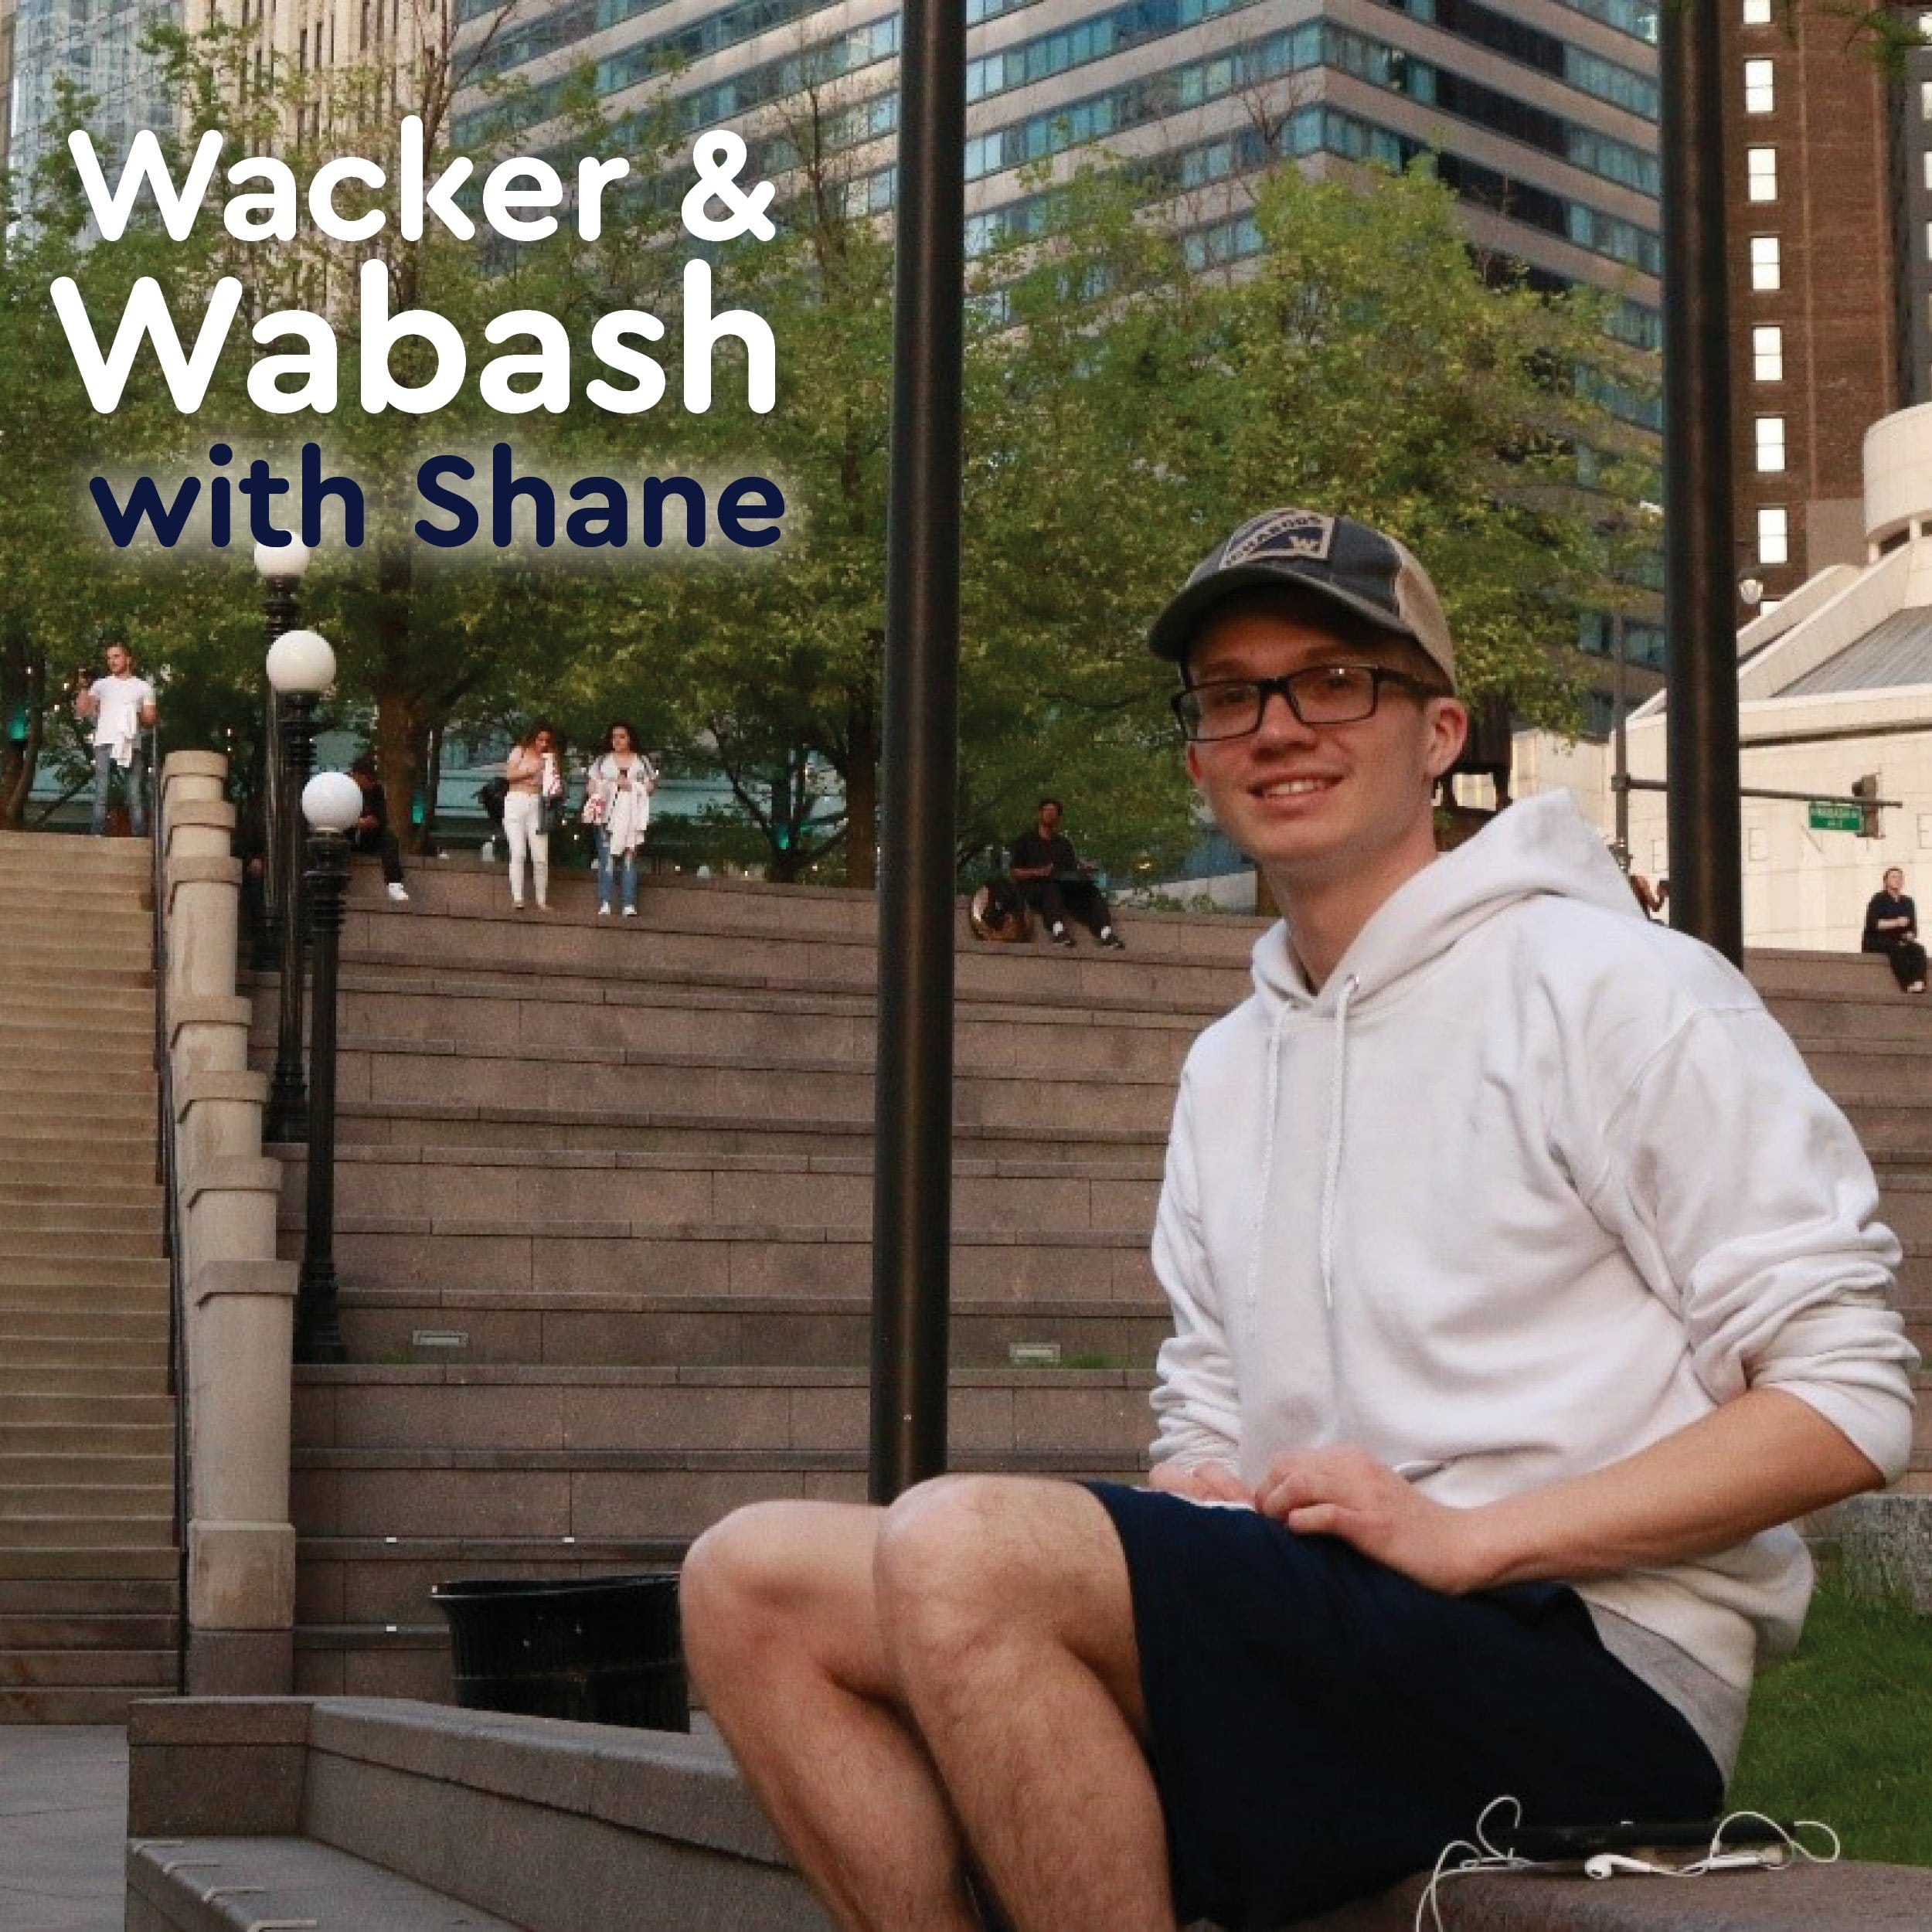 Wacker & Wabash with Shane